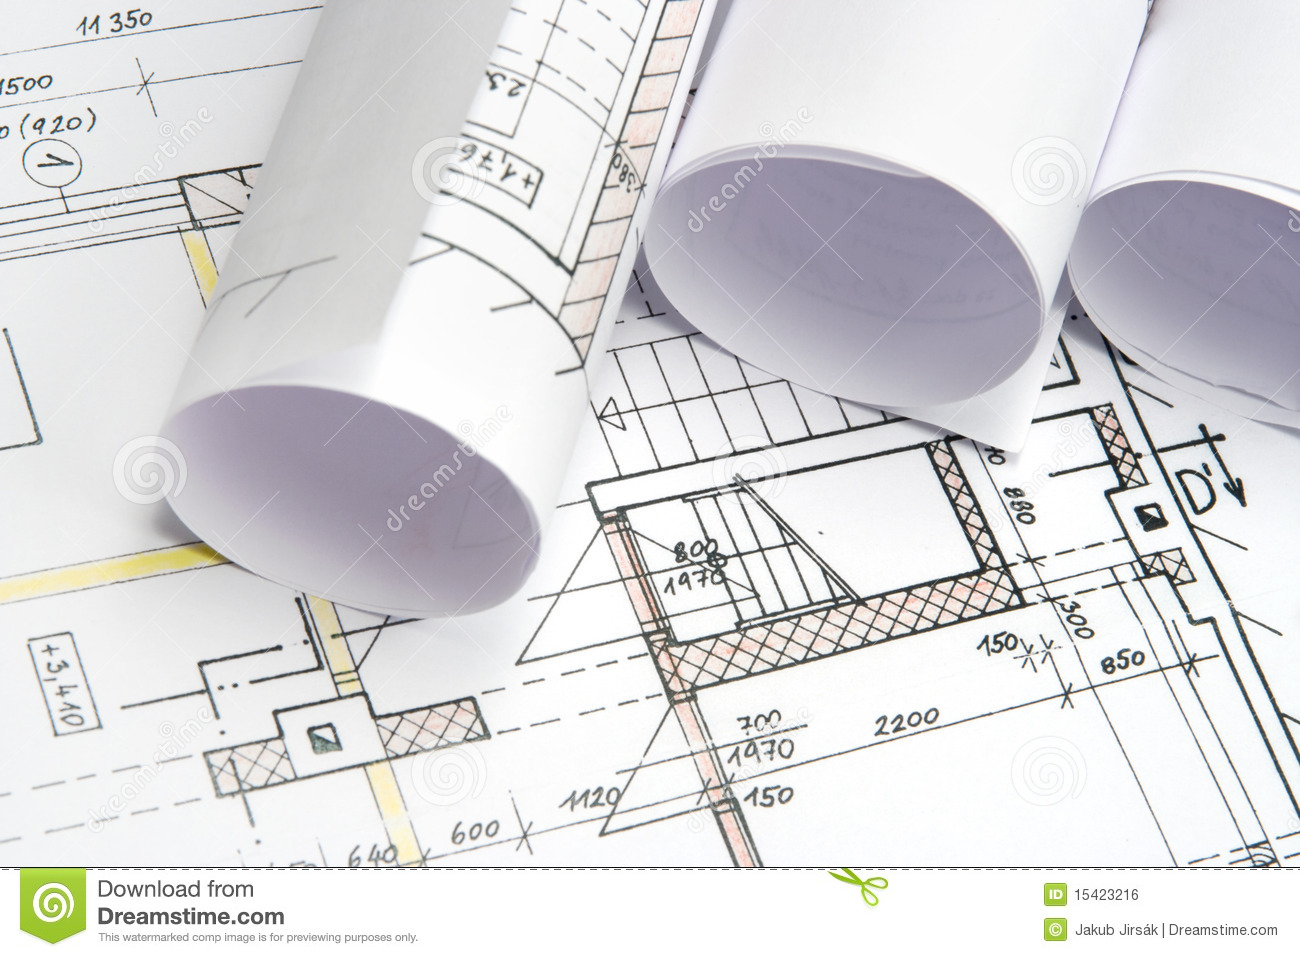 Blueprints of architecture royalty free stock image for Blueprint architects